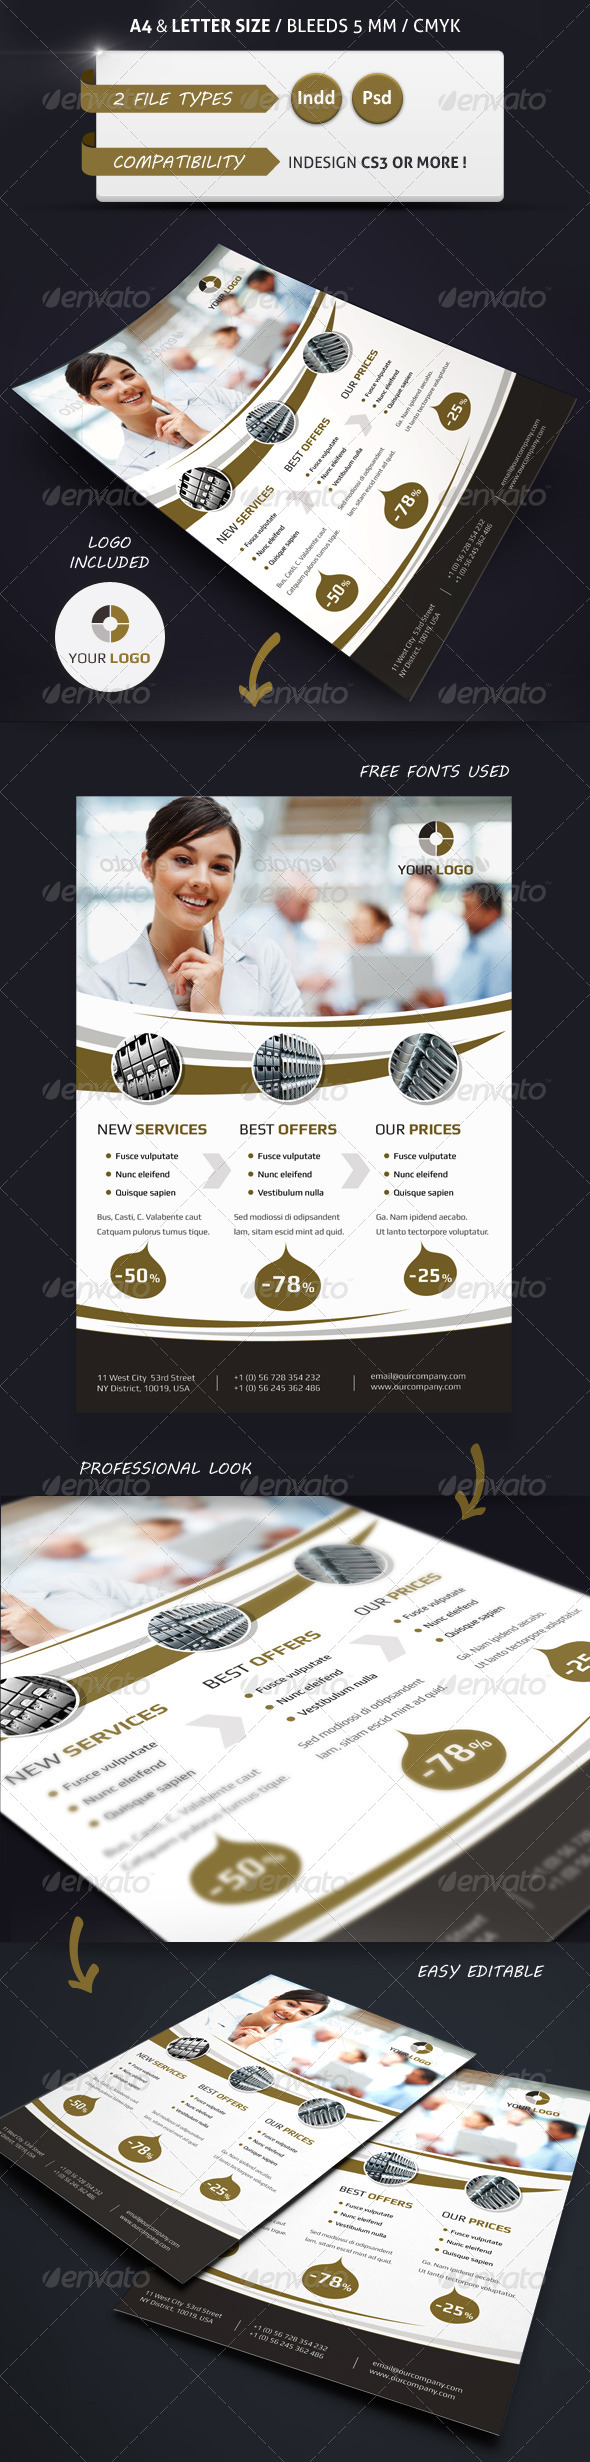 Modern Business Flyer Template A4 & Letter - Commerce Flyers